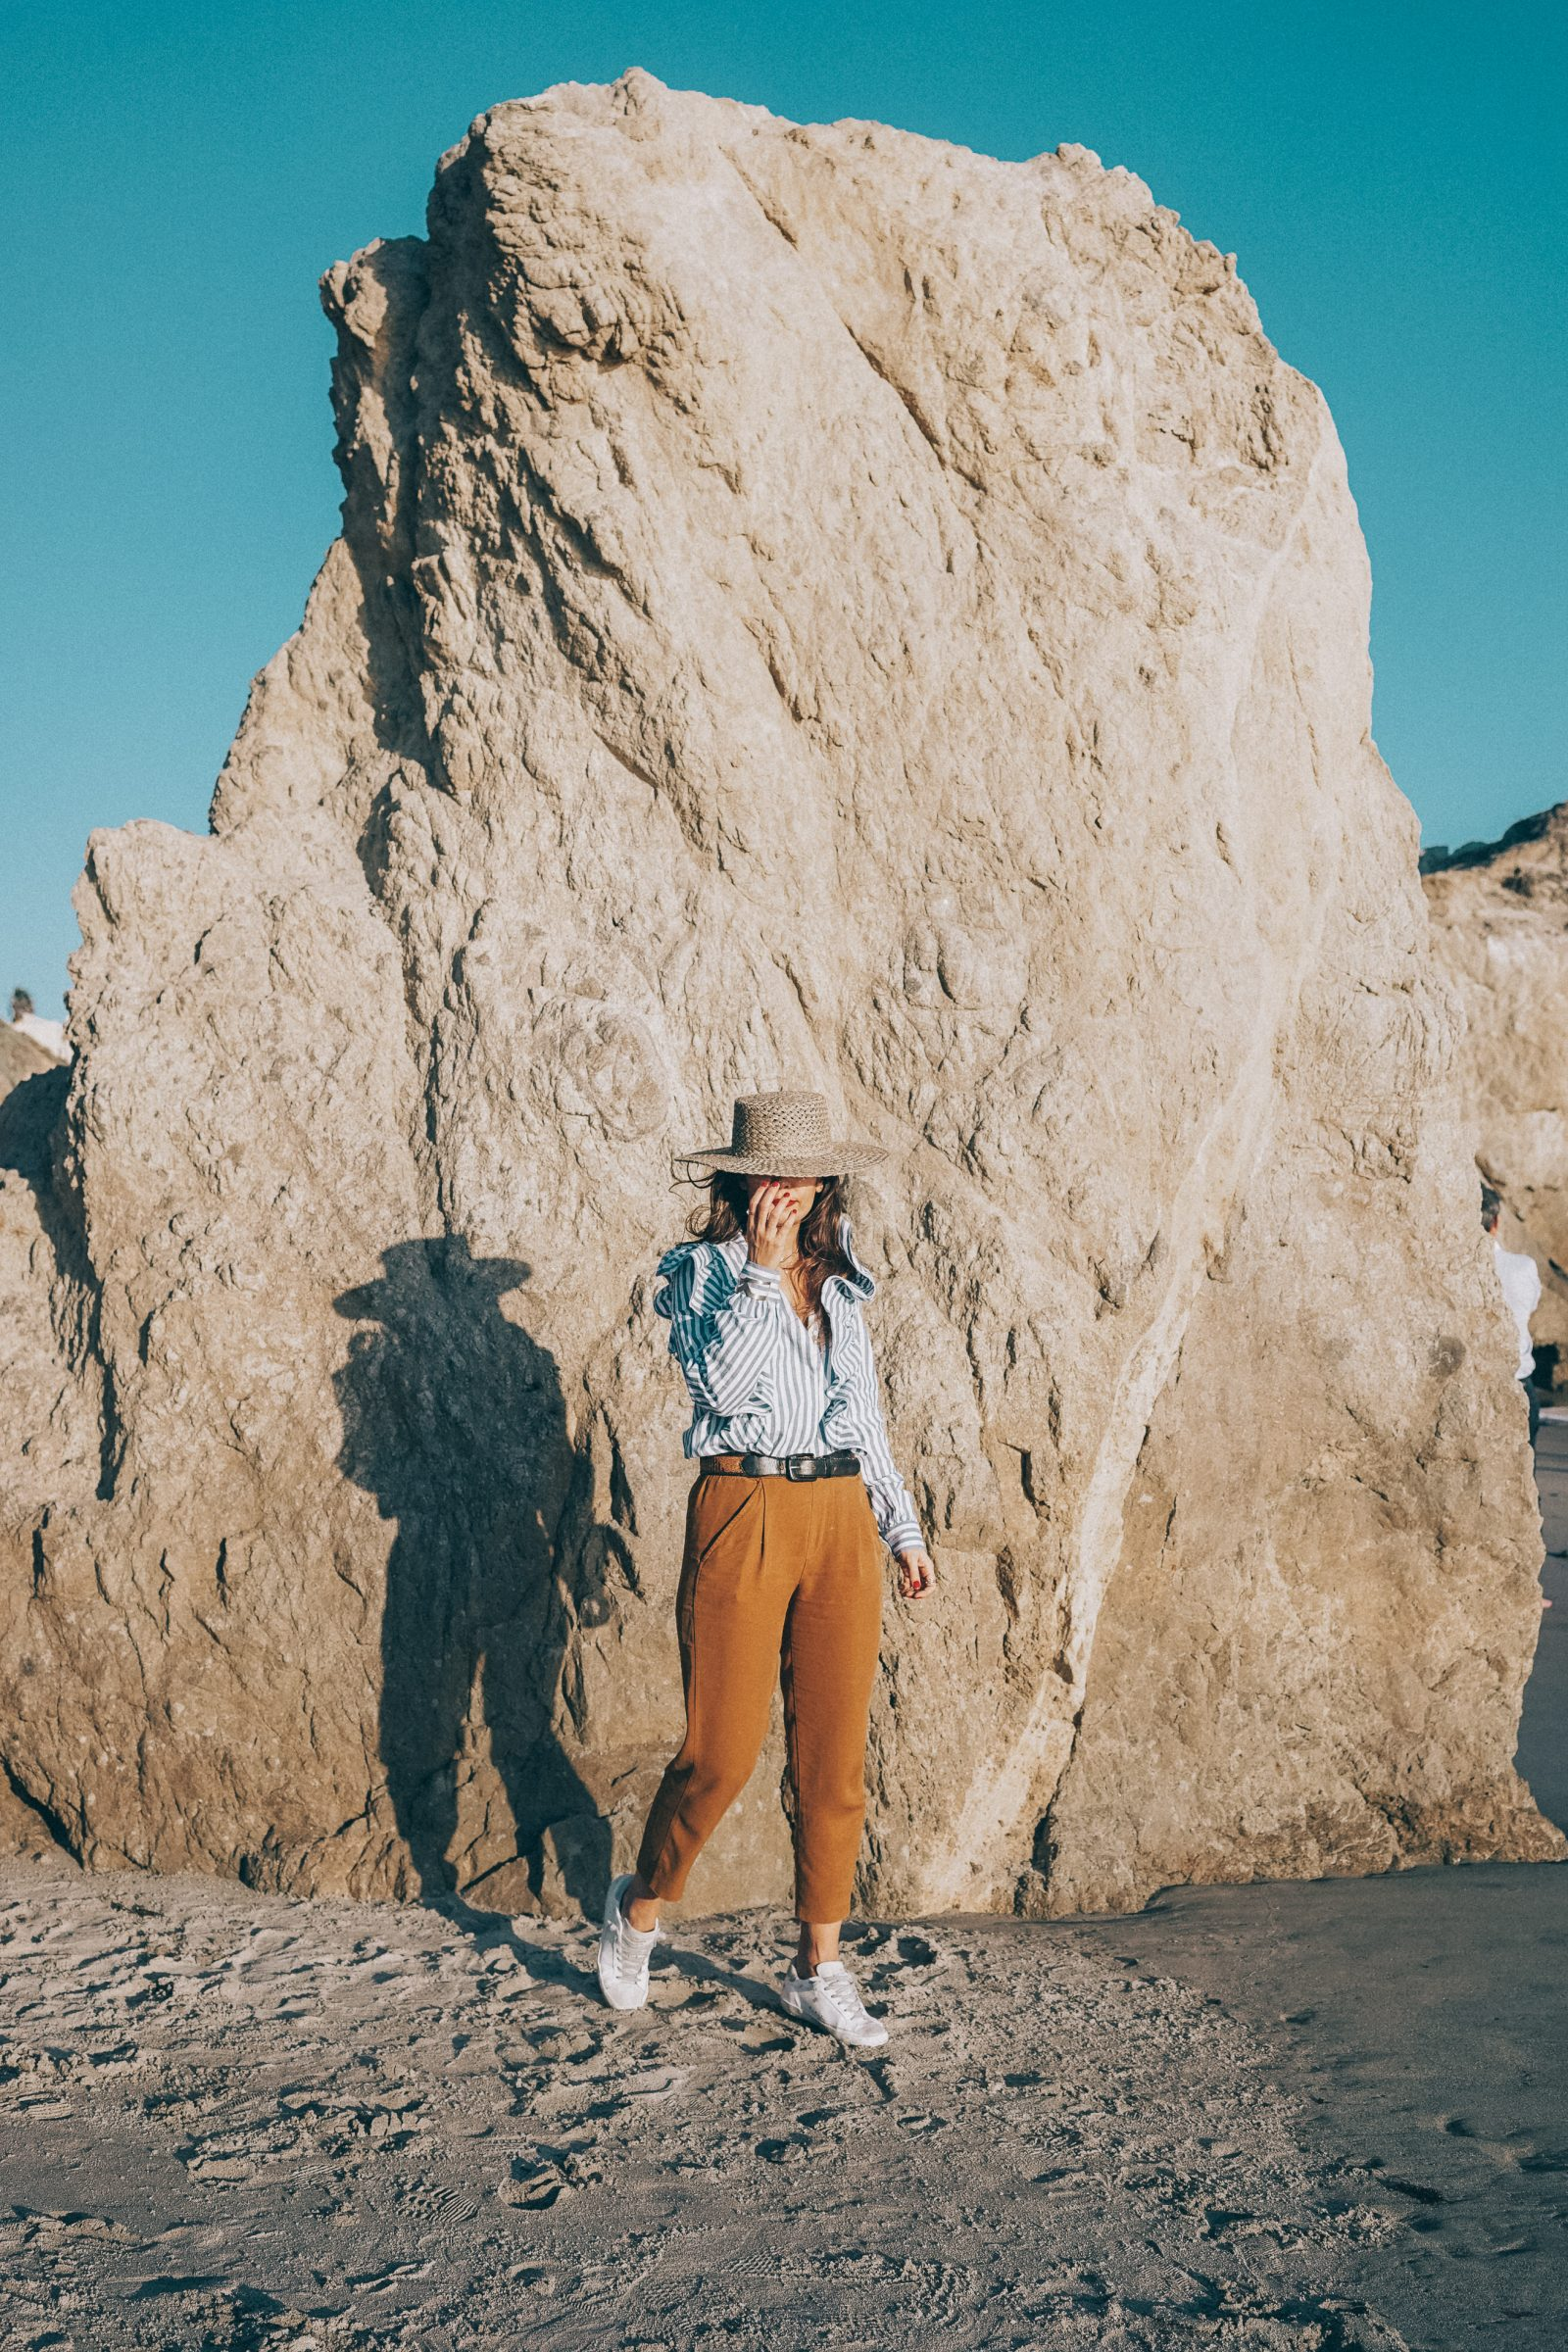 stripped_blouse-camel_trousers-lack_of_color_hat-wanderlust_jewels-matador_beach-malibu-golden_goose_sneakers-street_style-collage_vintage-159